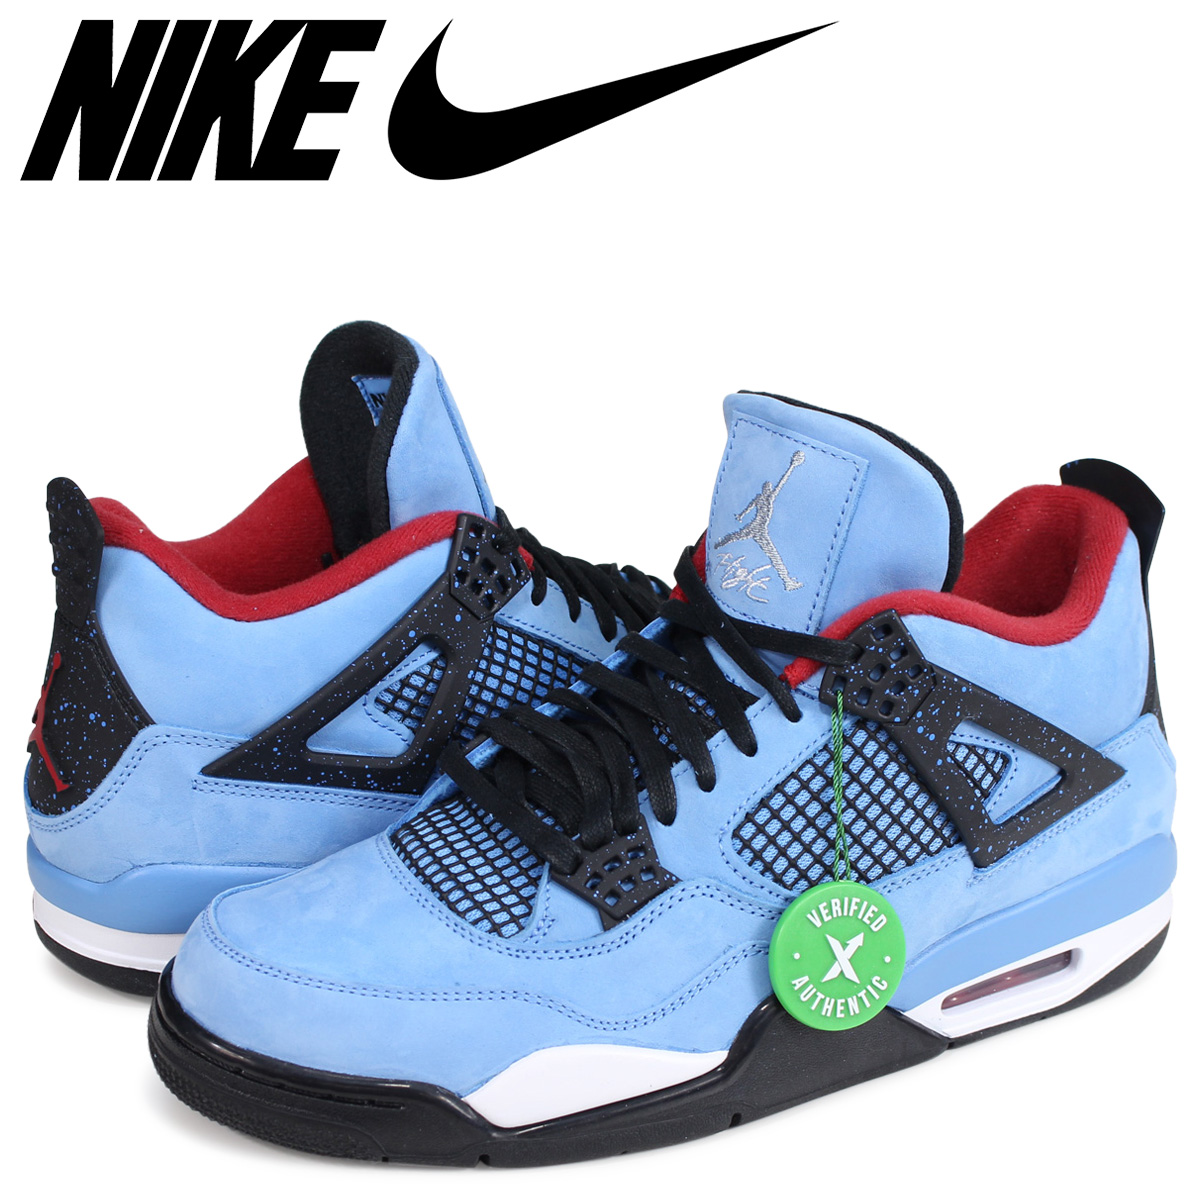 huge selection of 8f3e2 2c9b4 NIKE Nike Air Jordan 4 sneakers AIR JORDAN 4 RETRO TRAVIS SCOTT 308,497-406  blue